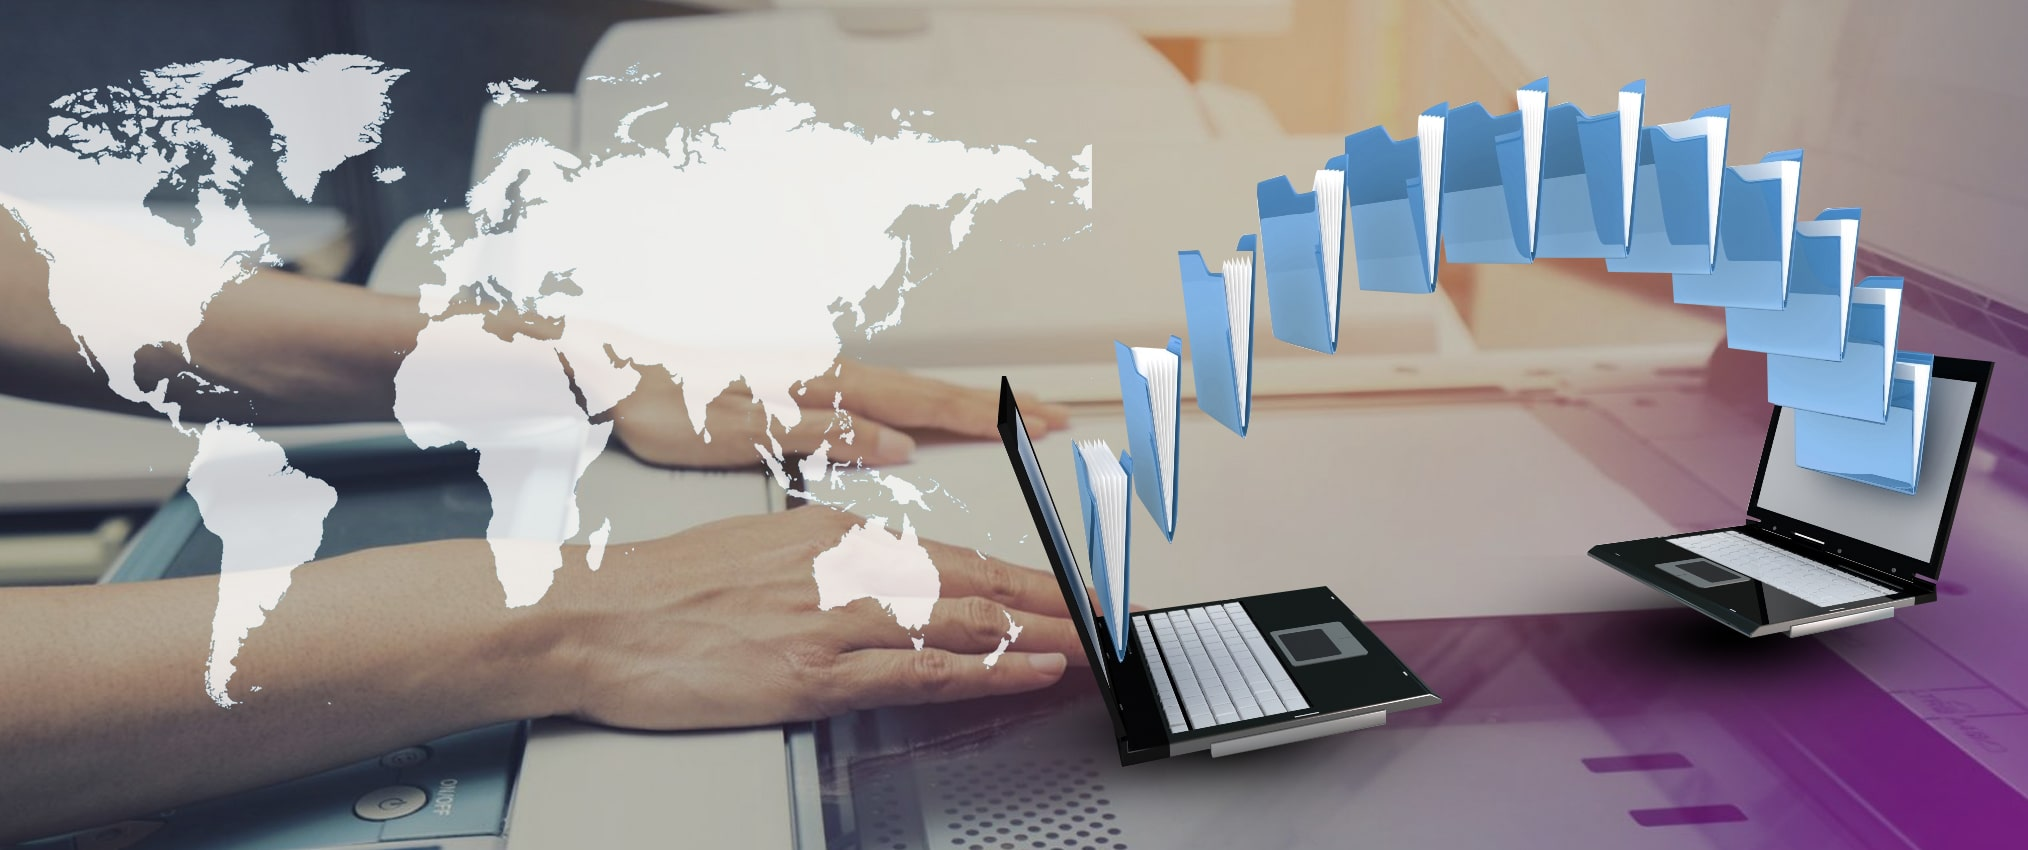 benefit-of-outsourcing-document-scanning-service